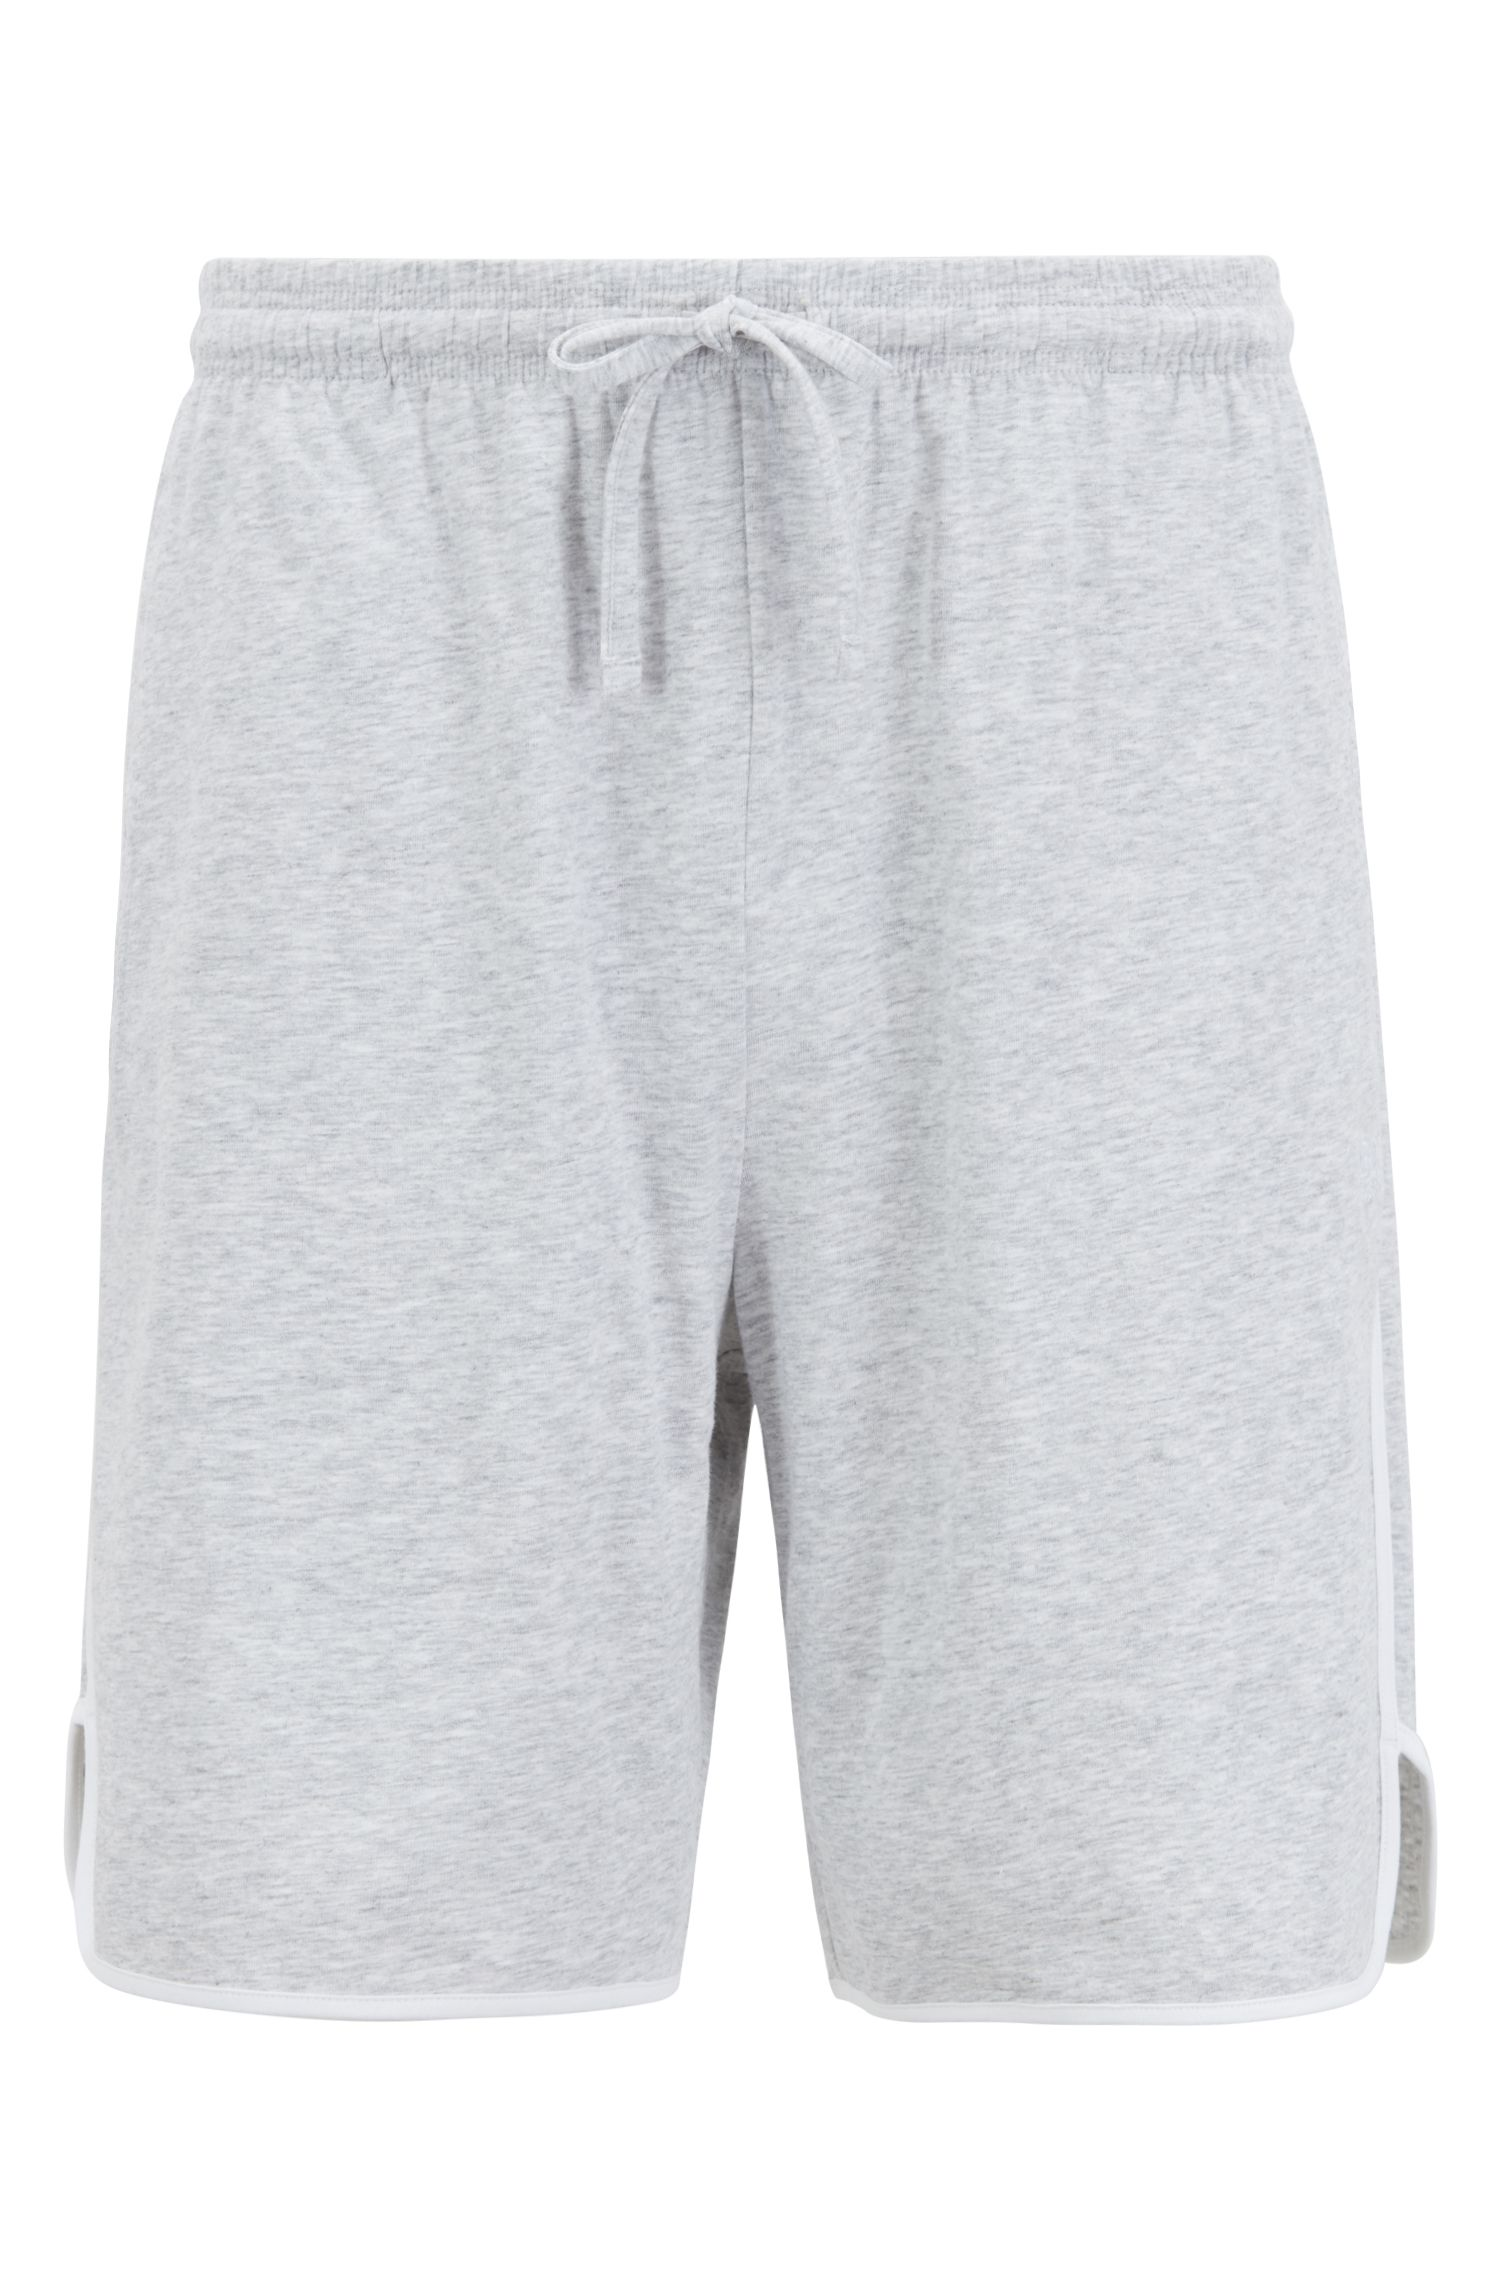 Loungewear shorts in stretch cotton with contrast piping, Grey